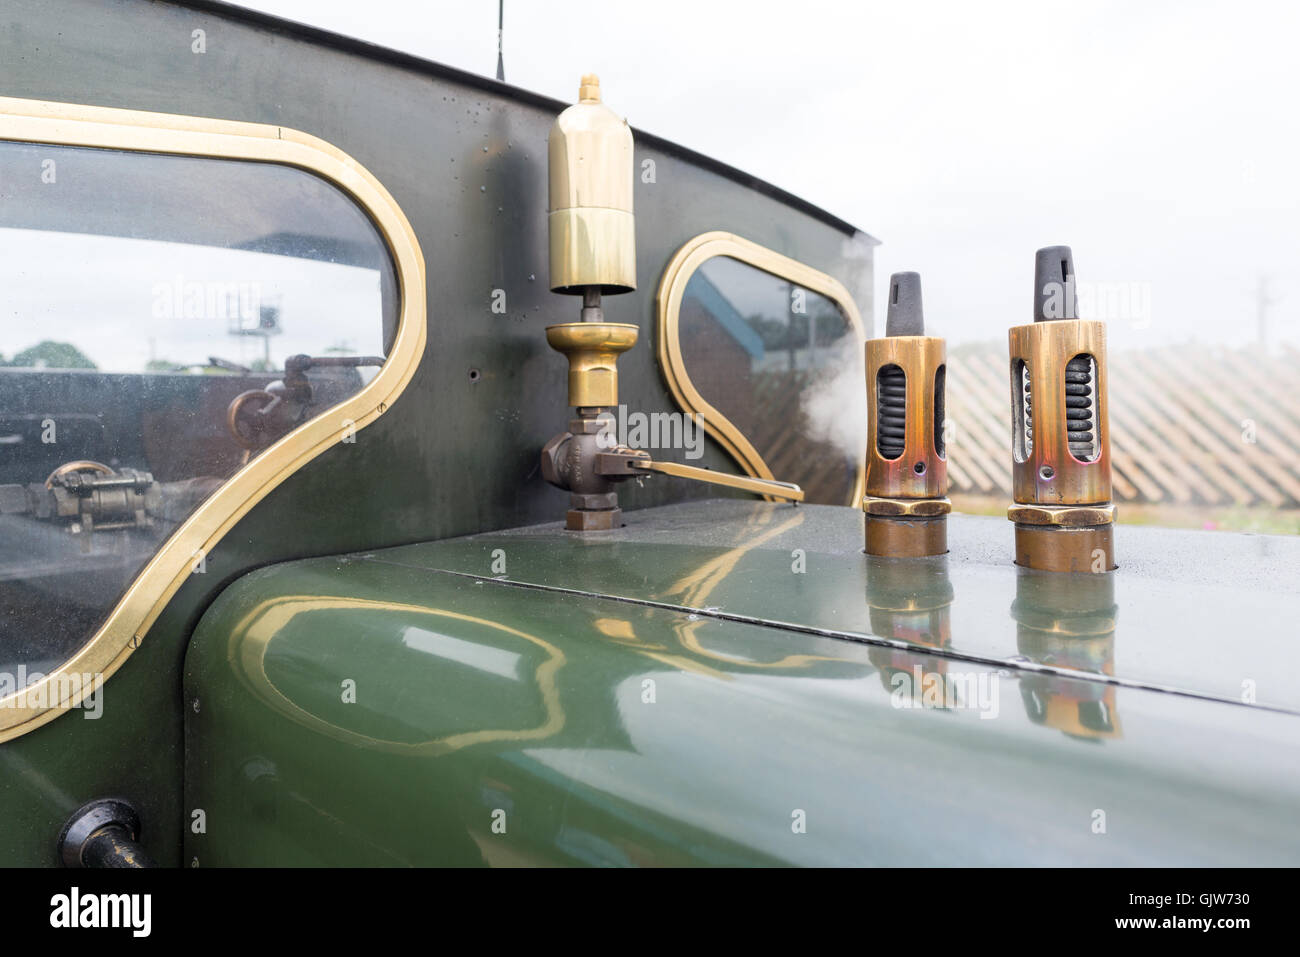 Whistle and steam vents on the top of the Bure Valley minimum gauge railway steam locomotive engine, Norfolk, UK. - Stock Image